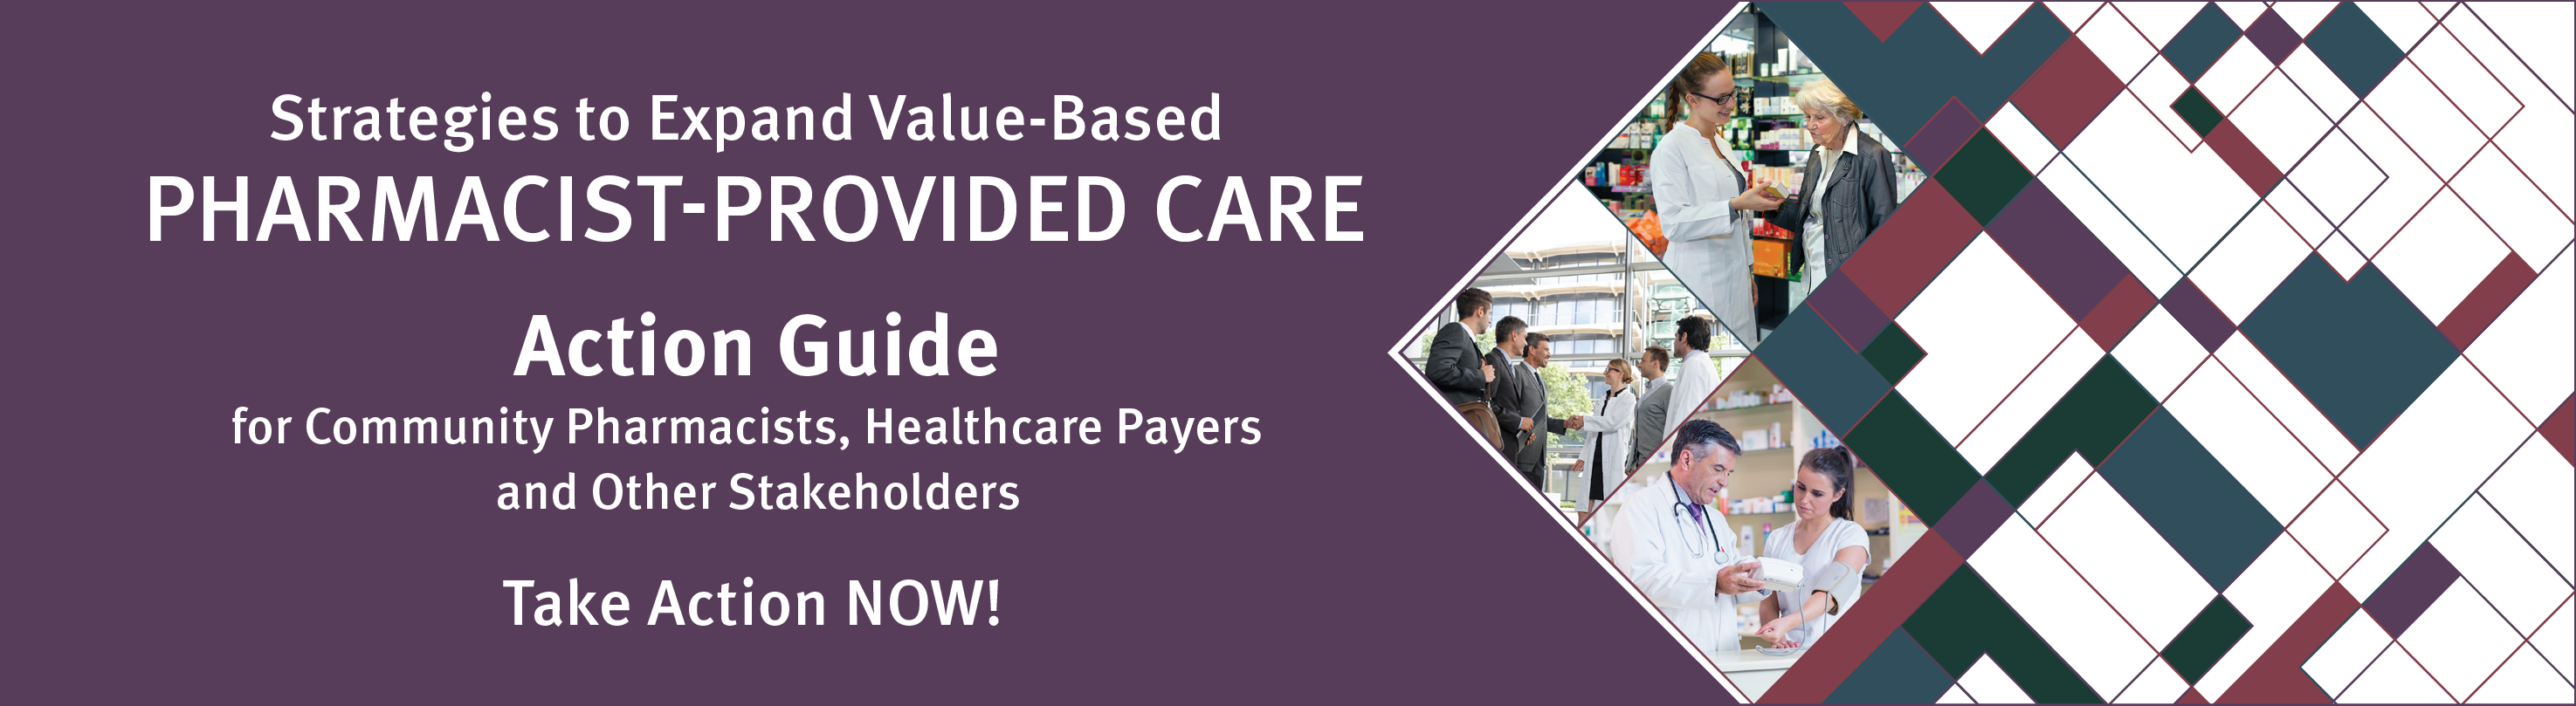 Strategies to Expand Value-Based Pharmacist-Provided Care Action Guide for Community Pharmacists, Healthcare Payers and Other Stakeholders